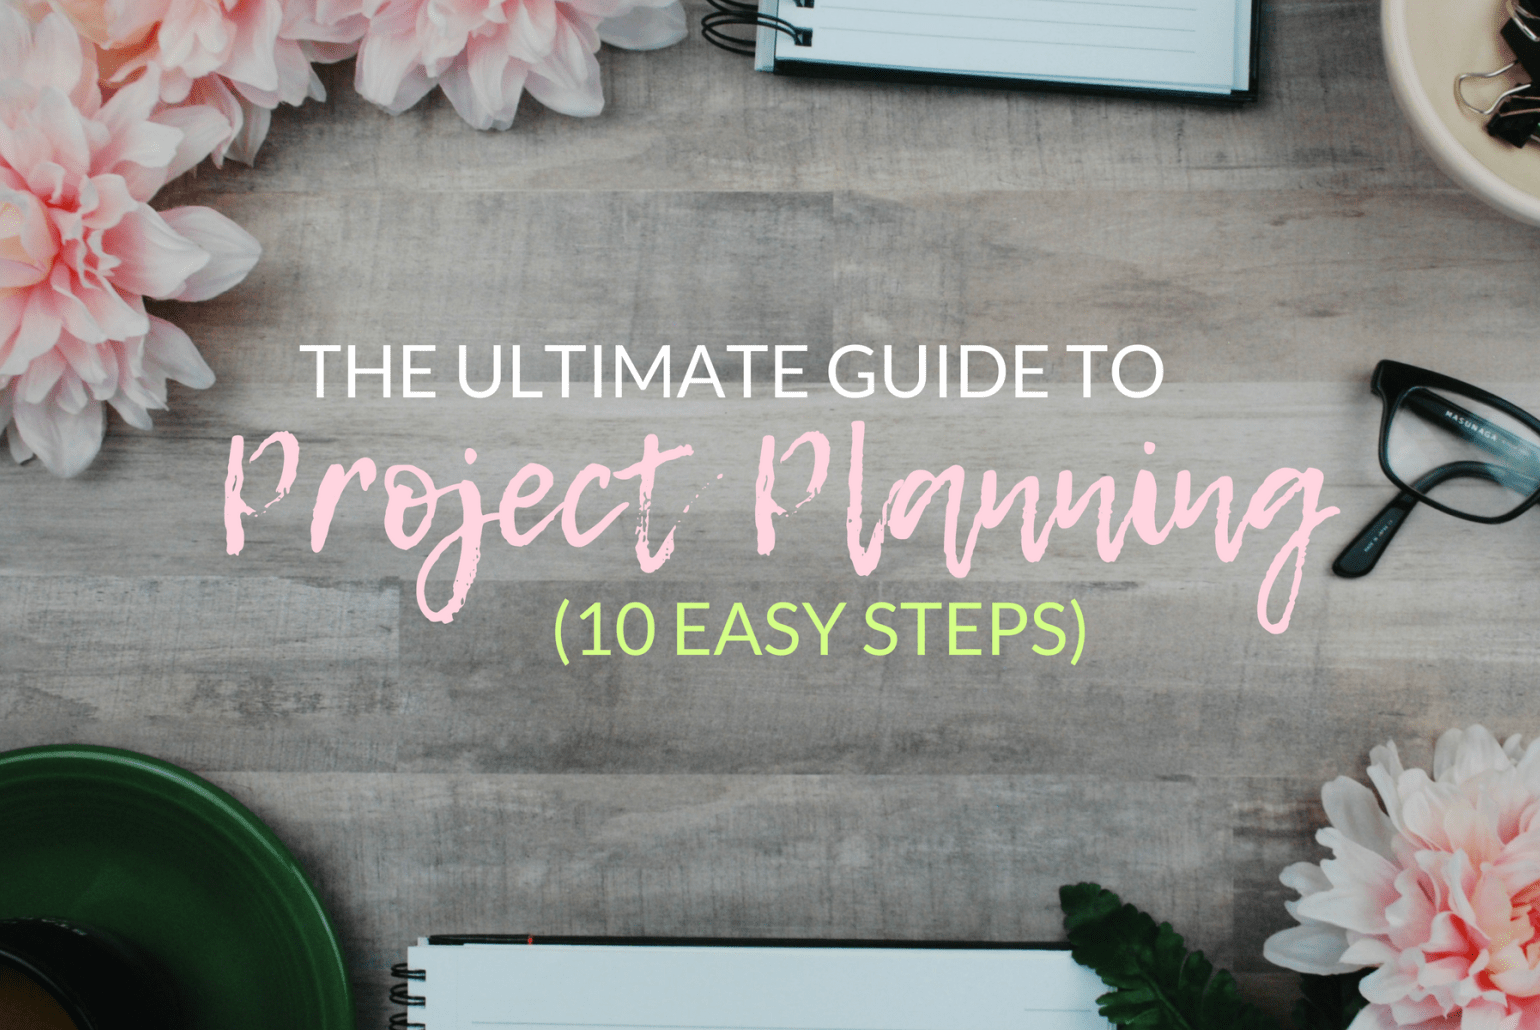 Master The Project Planning Process In 10 Easy Steps